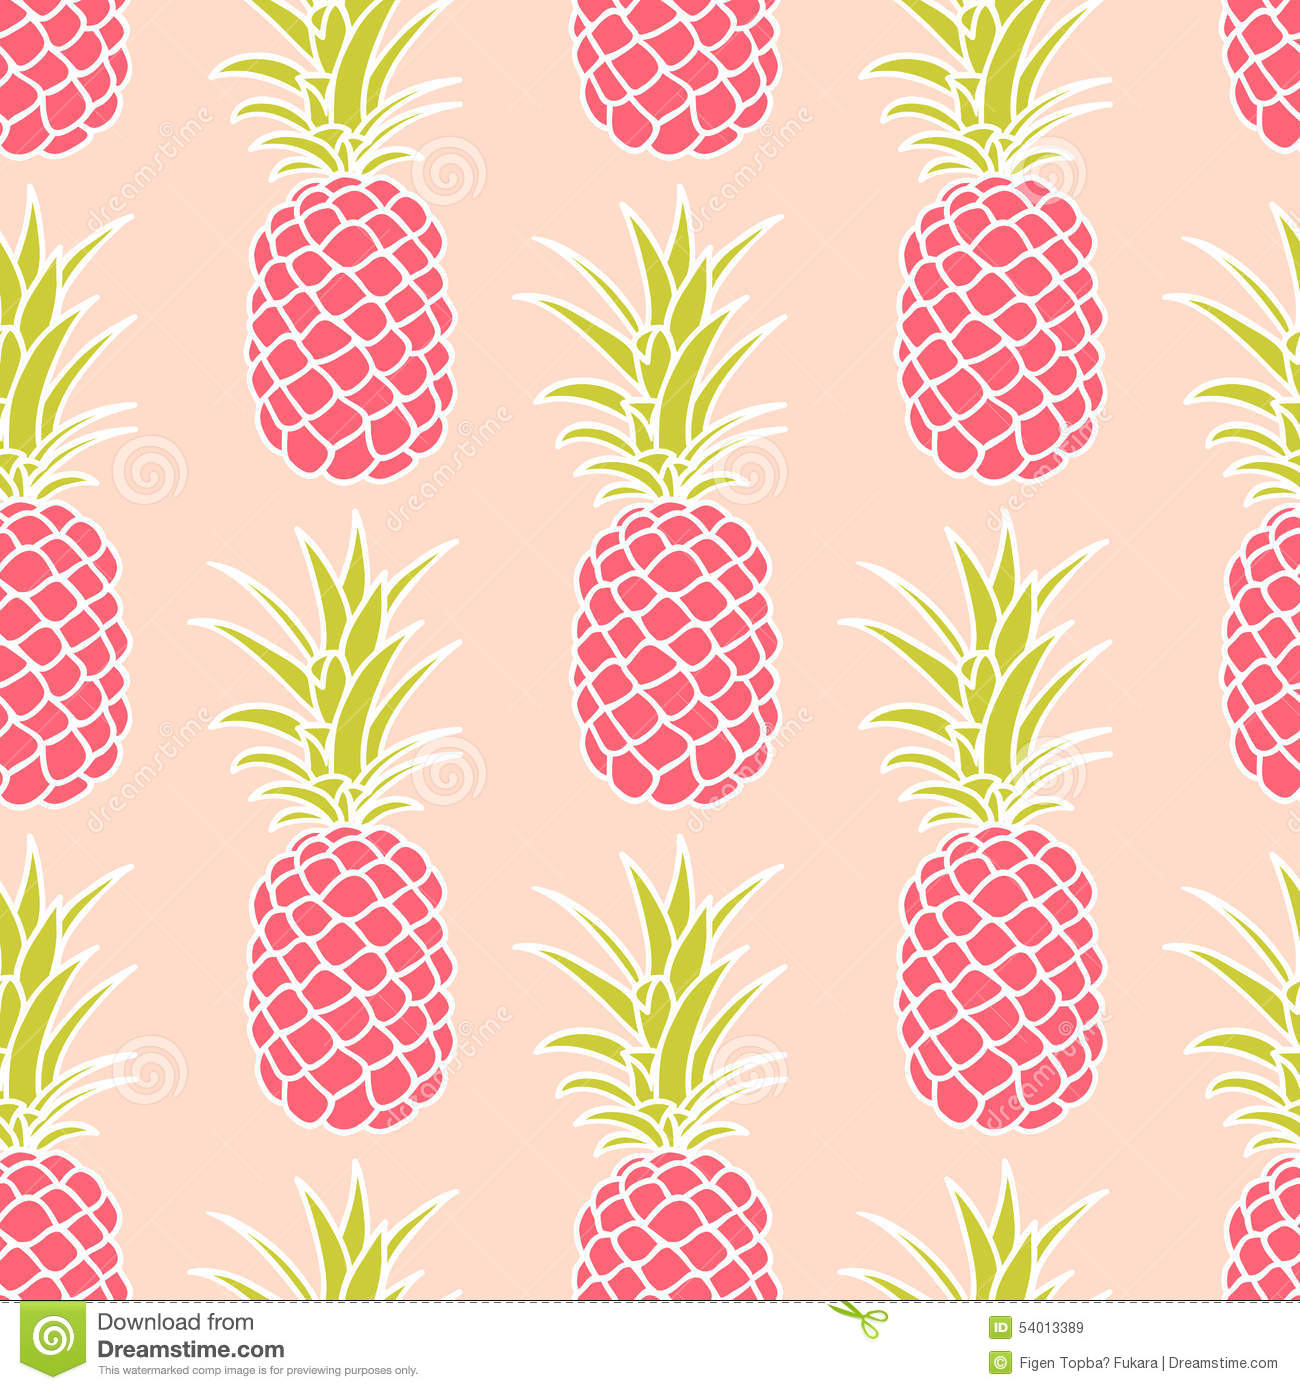 Pineapple pattern background - photo#17